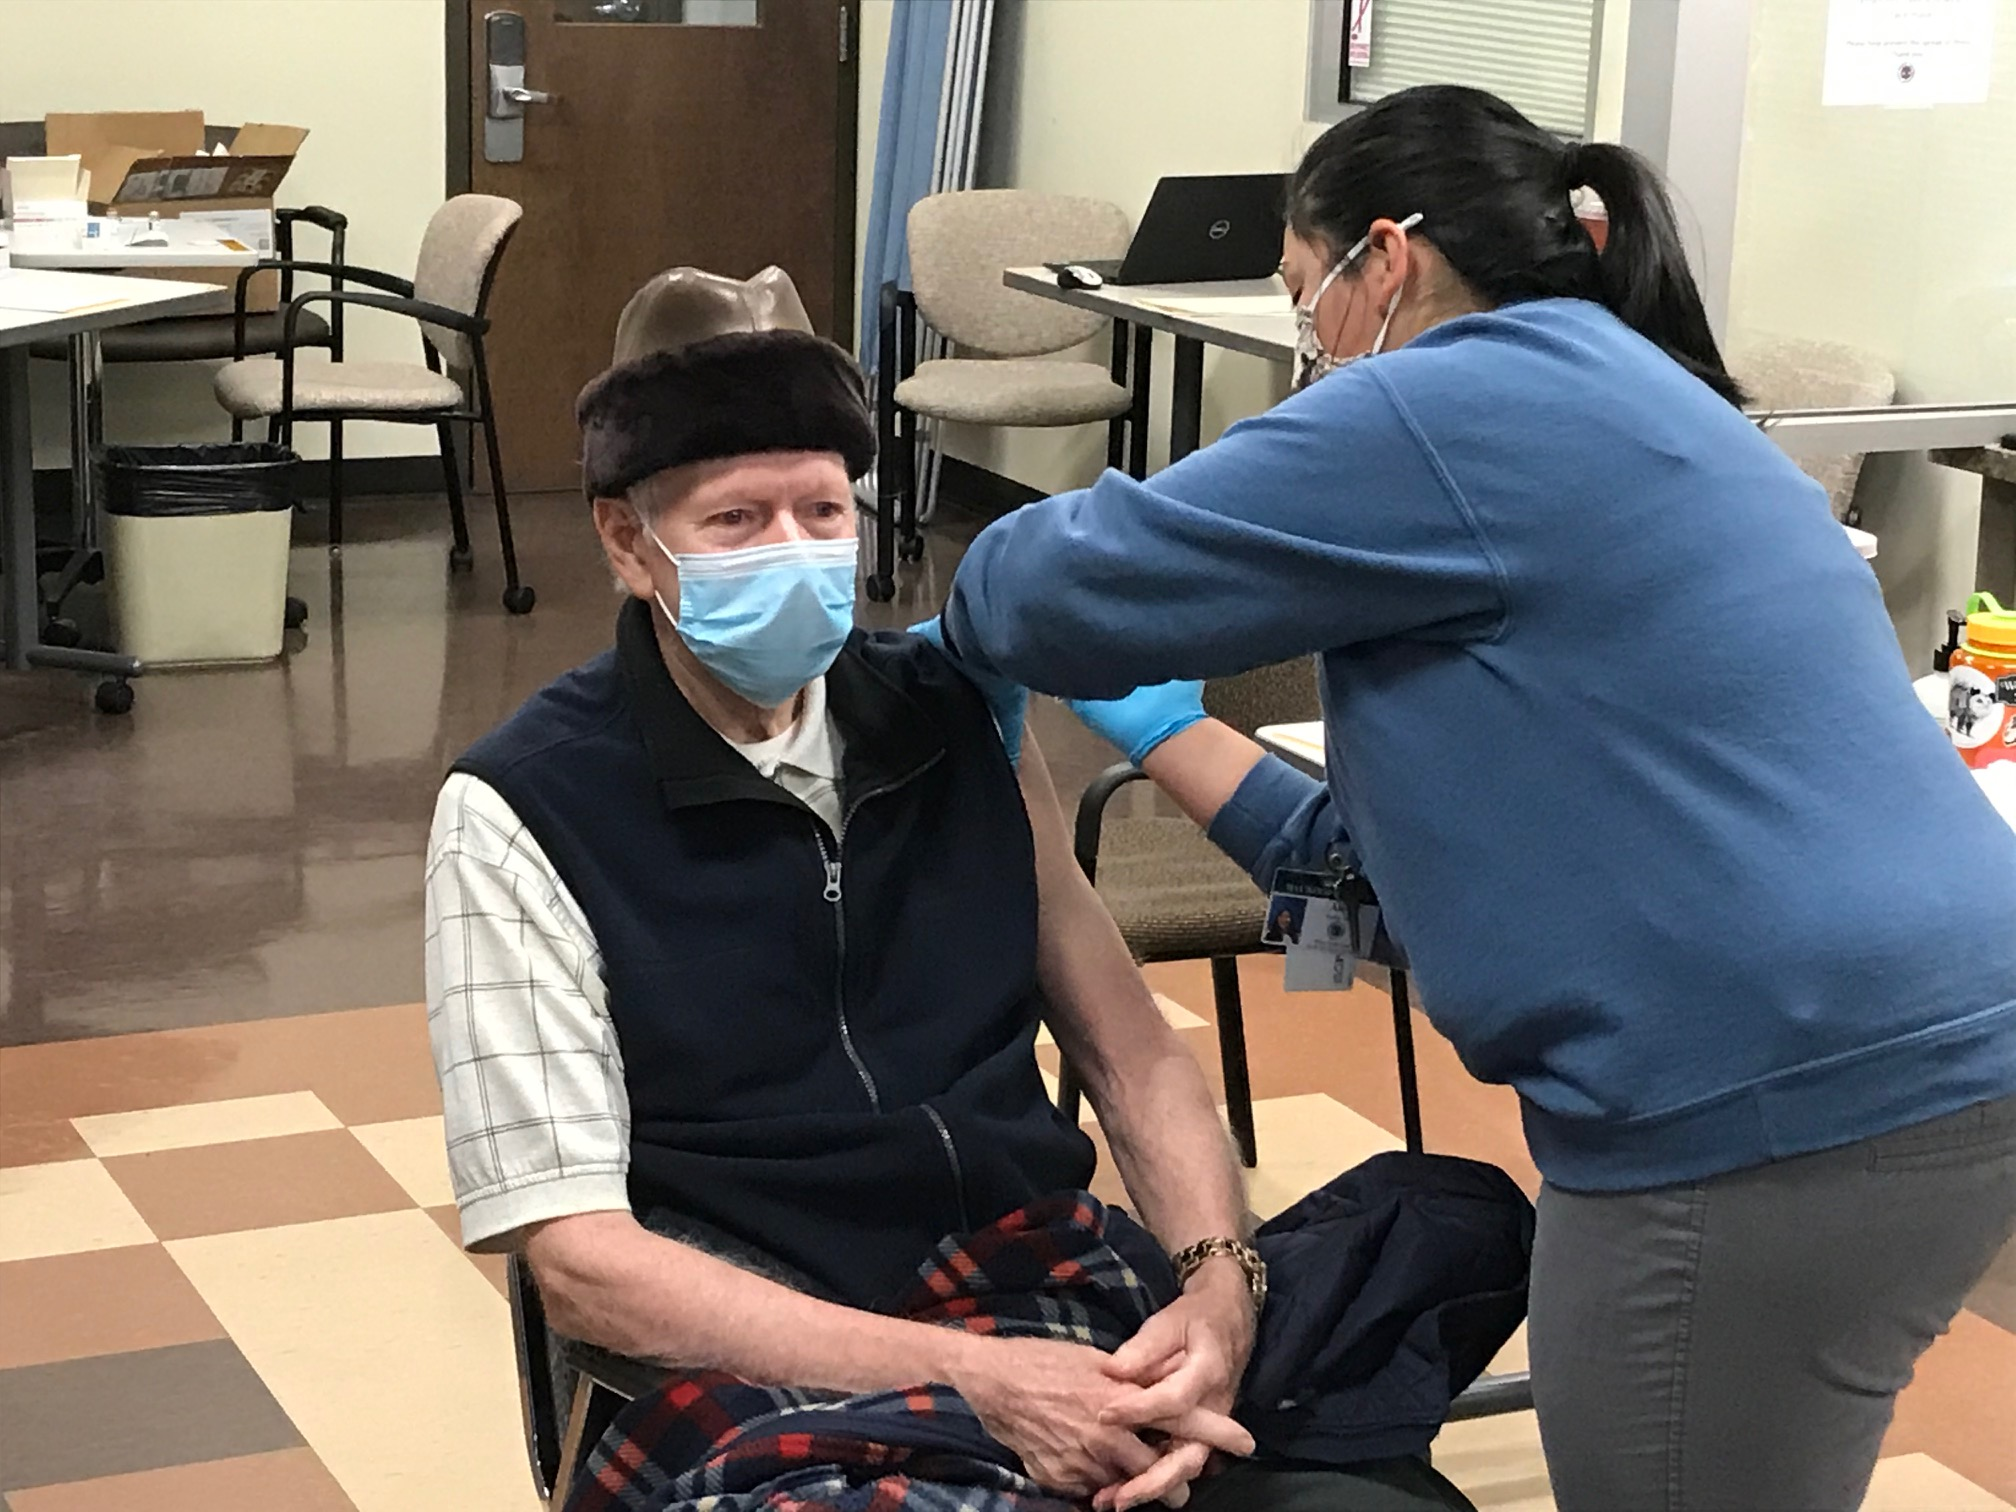 <p>Now that that those 65 and older in North Carolina are eligible for the COVID-19 vaccine, many counties like Haywood will face even greater challenges due to limited supplies and staffing. (Photo credit: WLOS)</p>